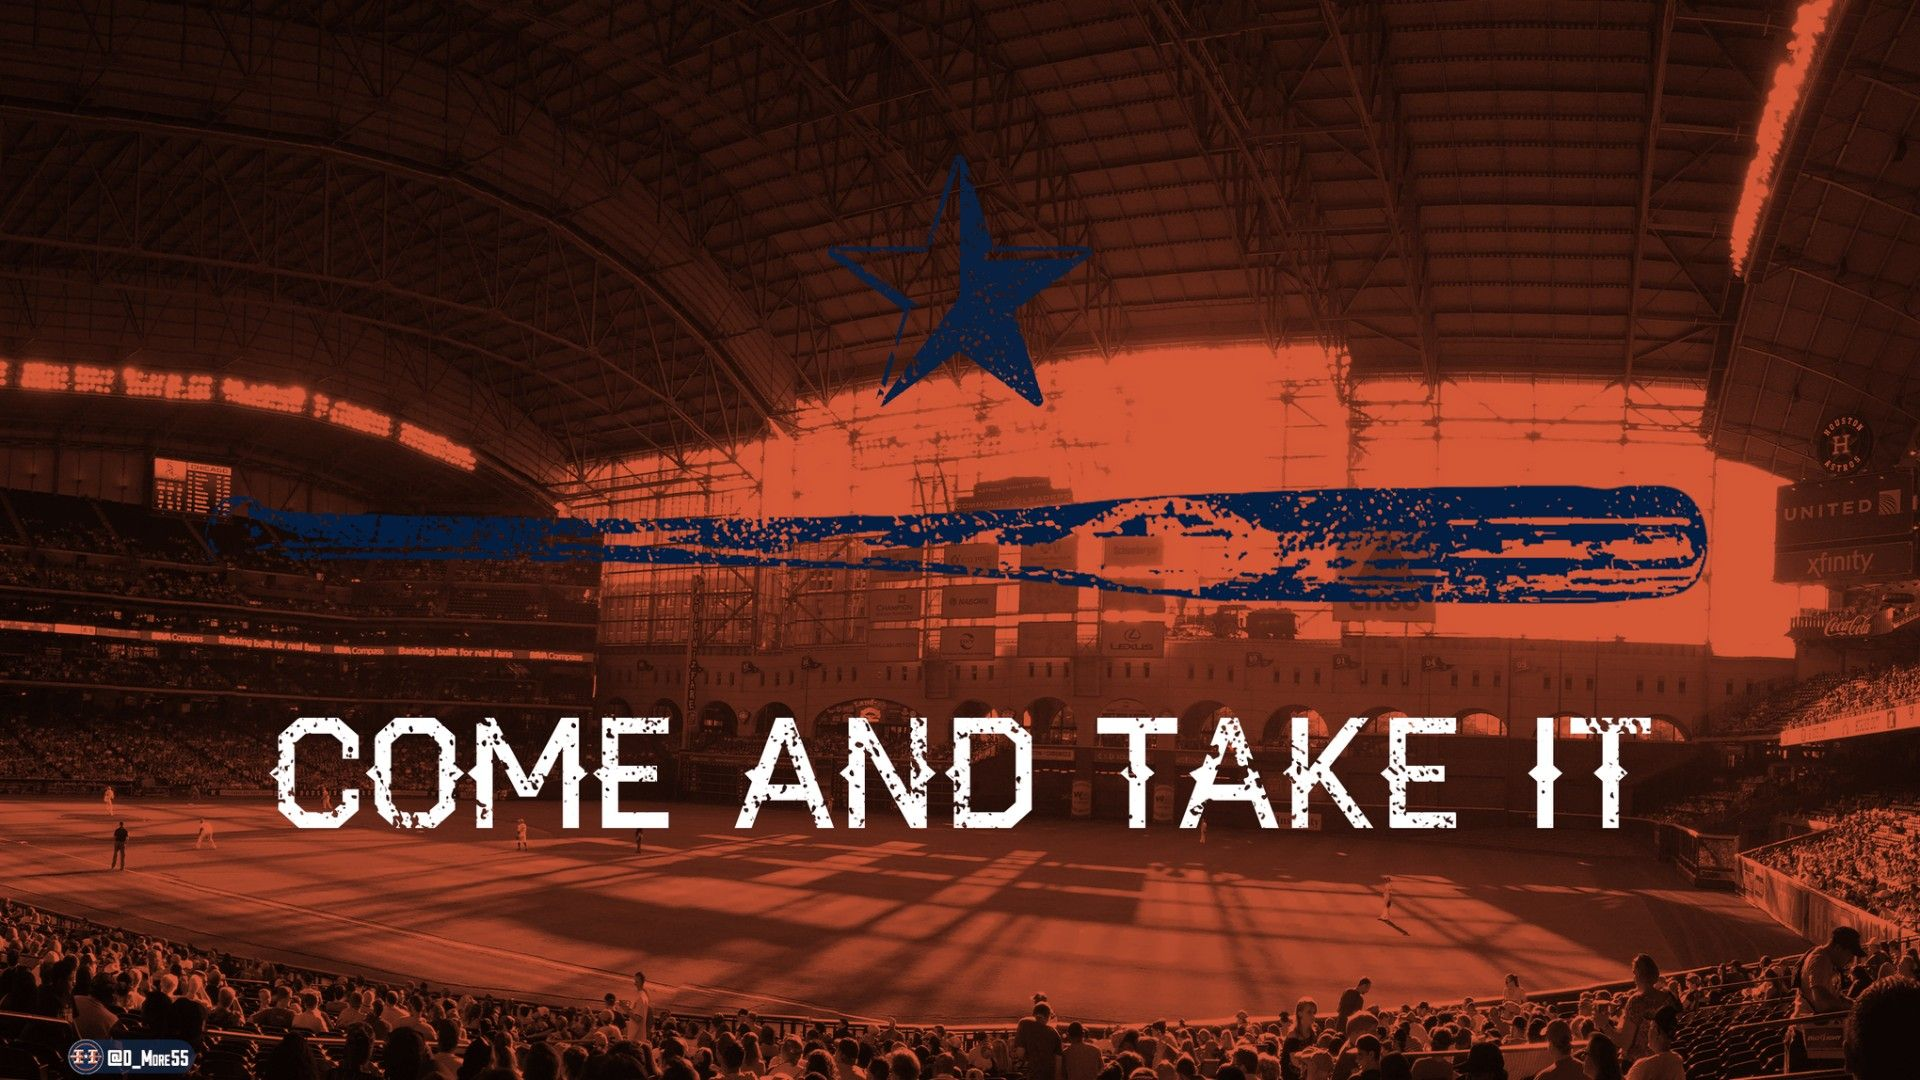 1920x1080 COME AND TAKE IT - Astros Wallpaper | Wallpaper Studio 10 | Tens of ...